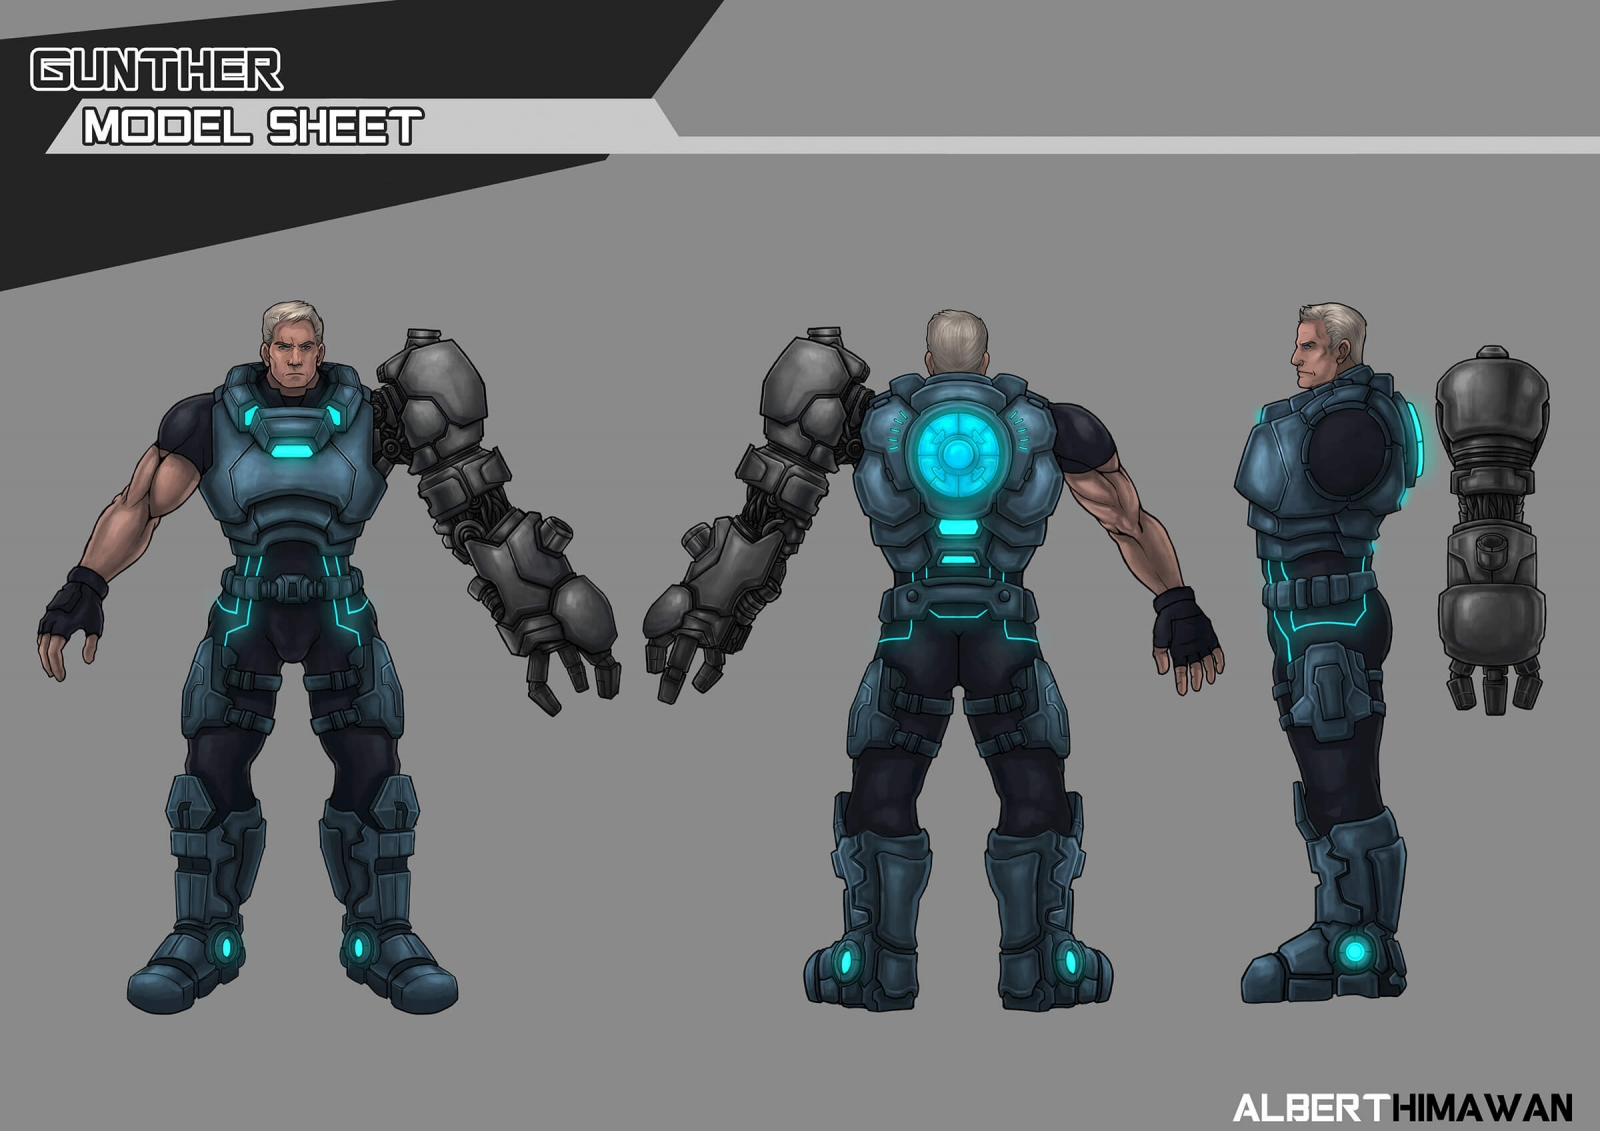 Turnaround character model sheet of a man in a futuristic, blue-metal suit with a bulky robotic left arm attachment.